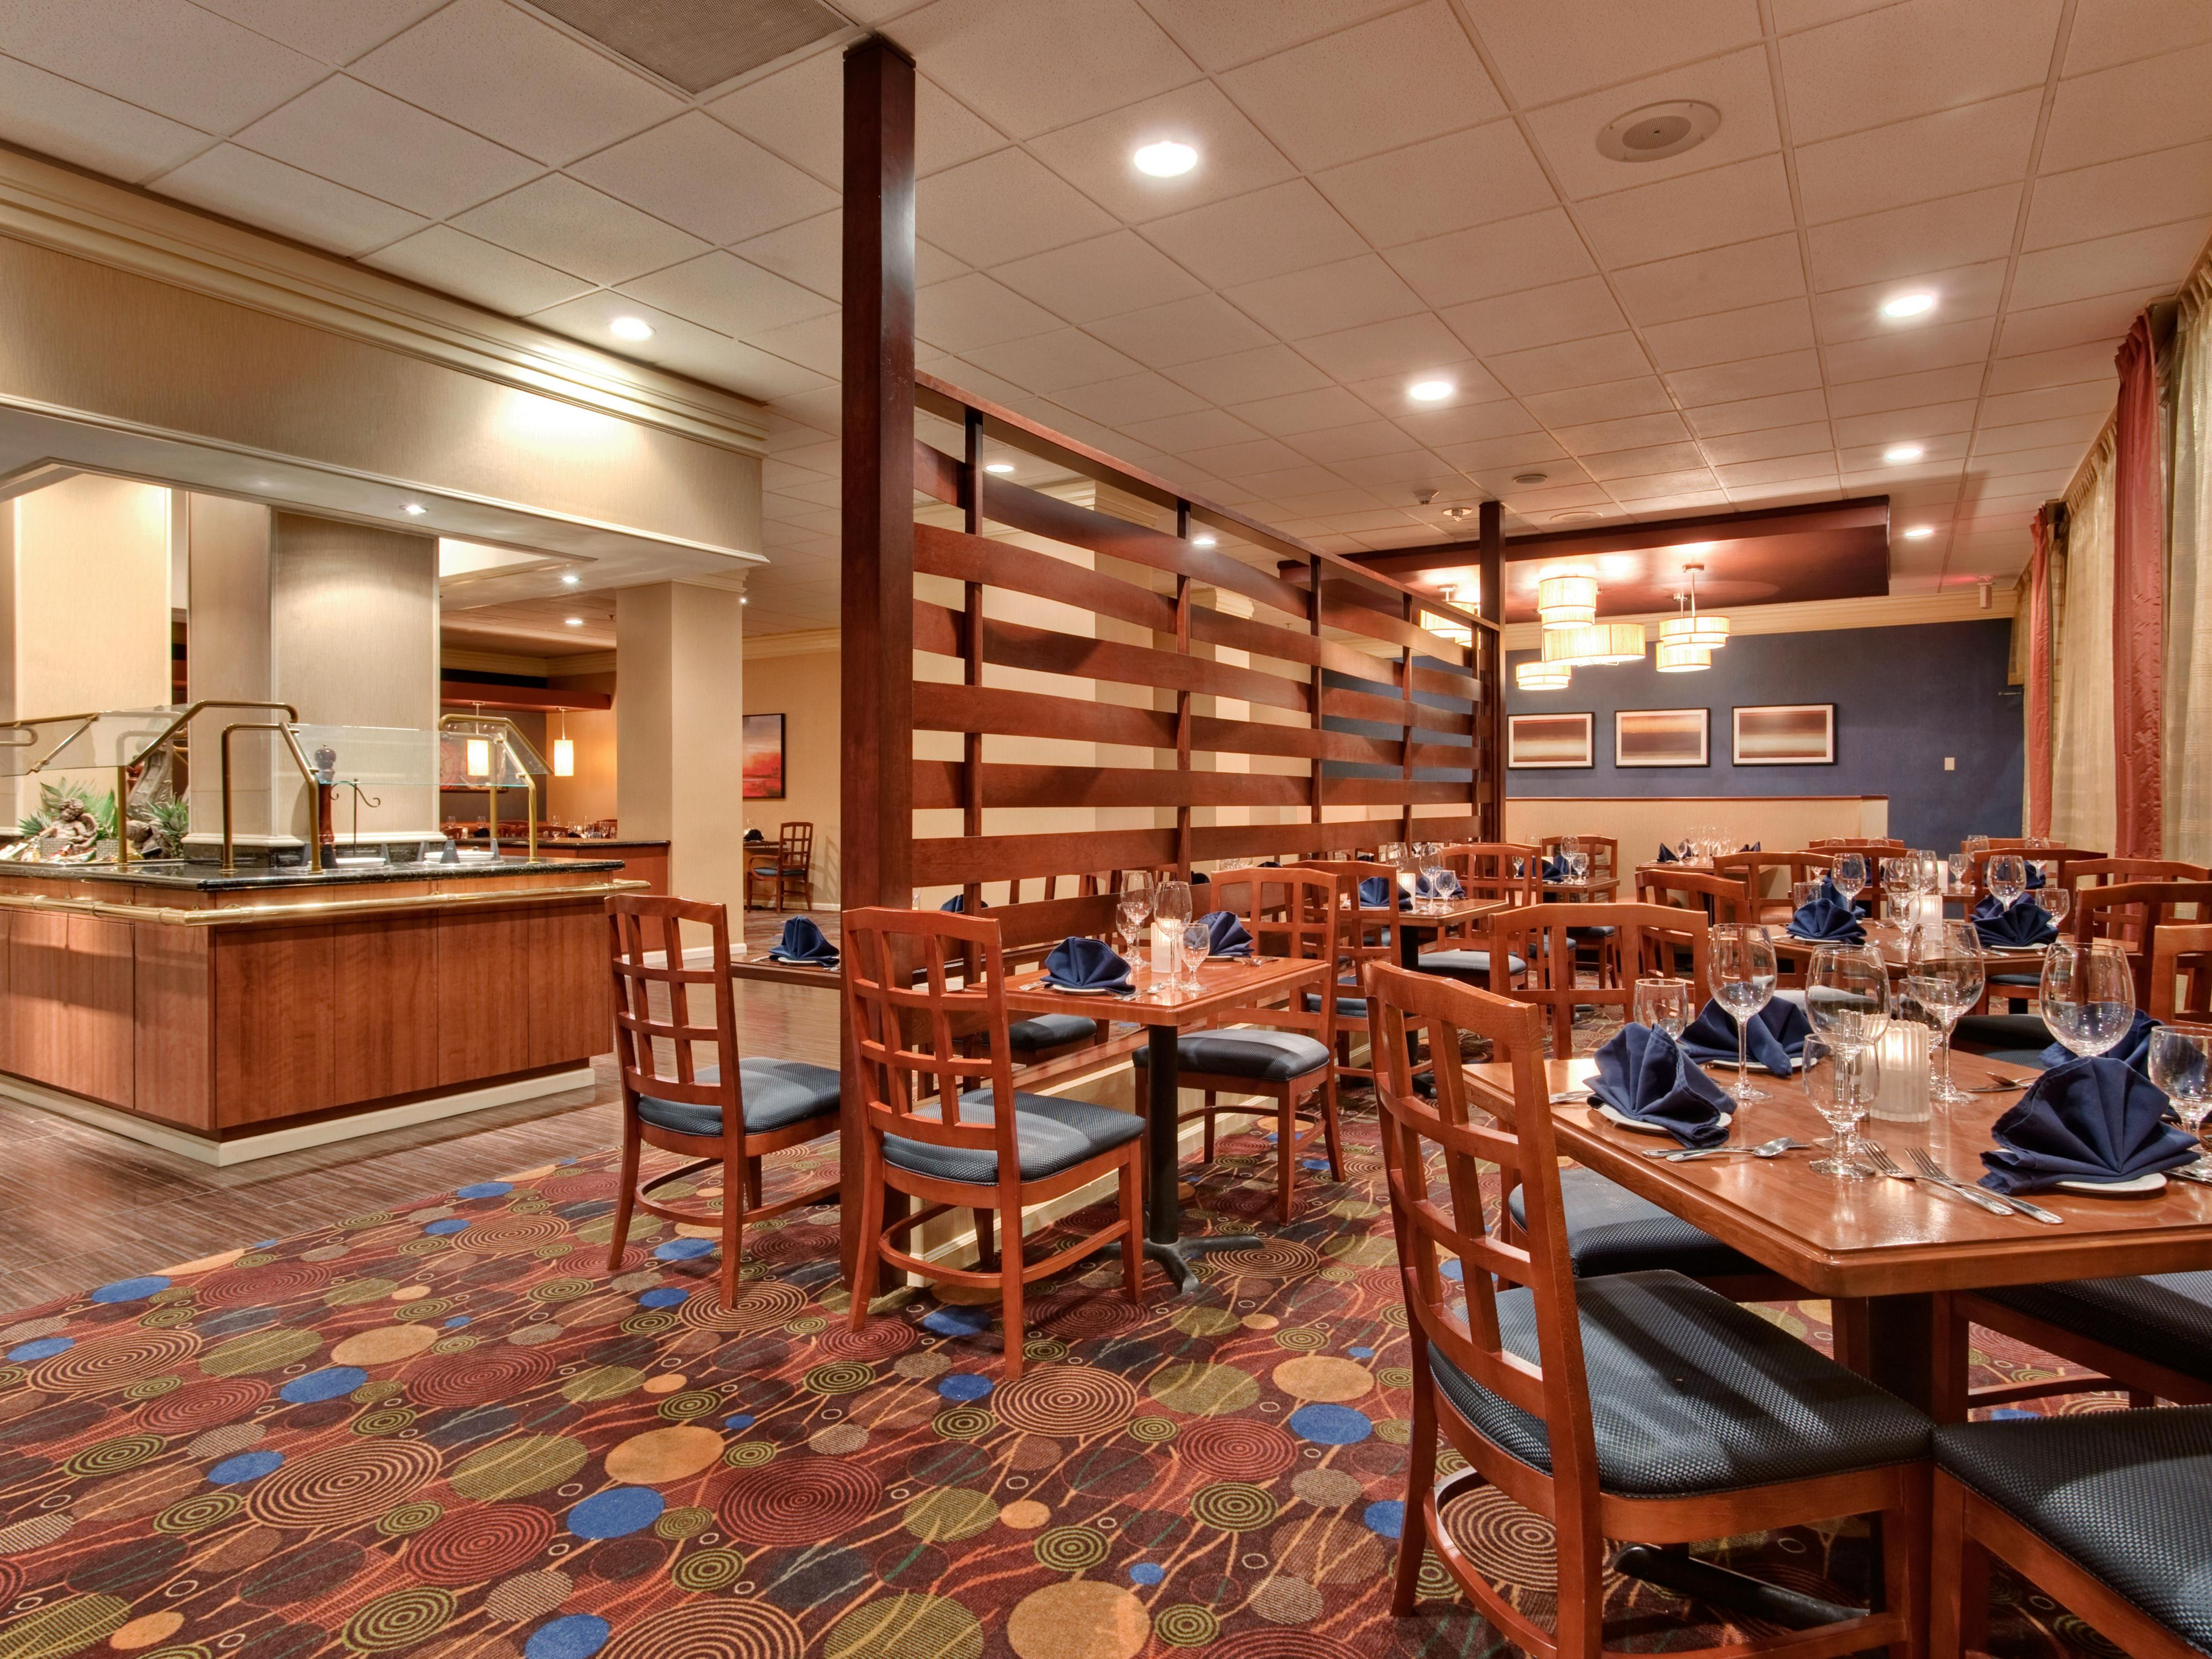 Landings Grill - your favorite LAX restaurant